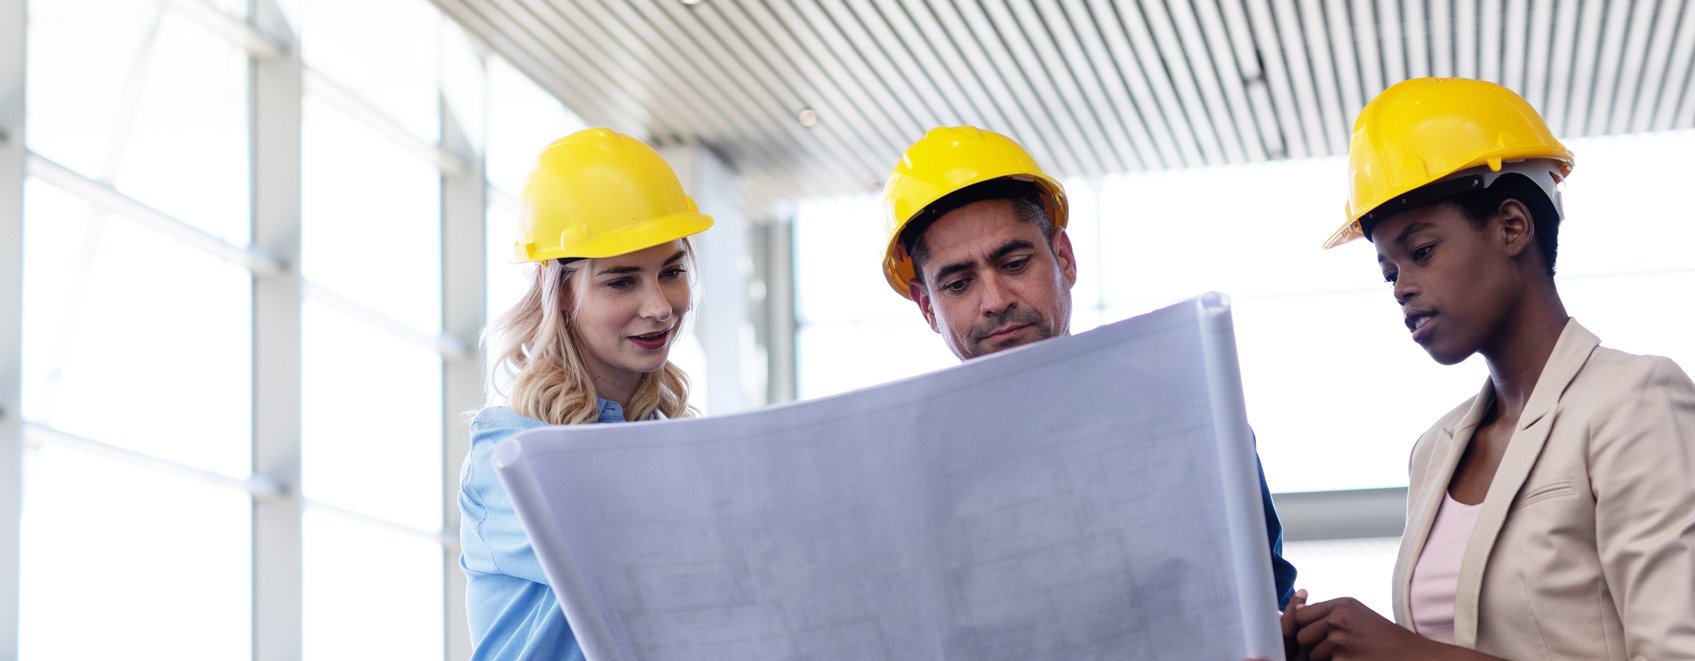 Three people in hard hats reviewing construction blueprints.